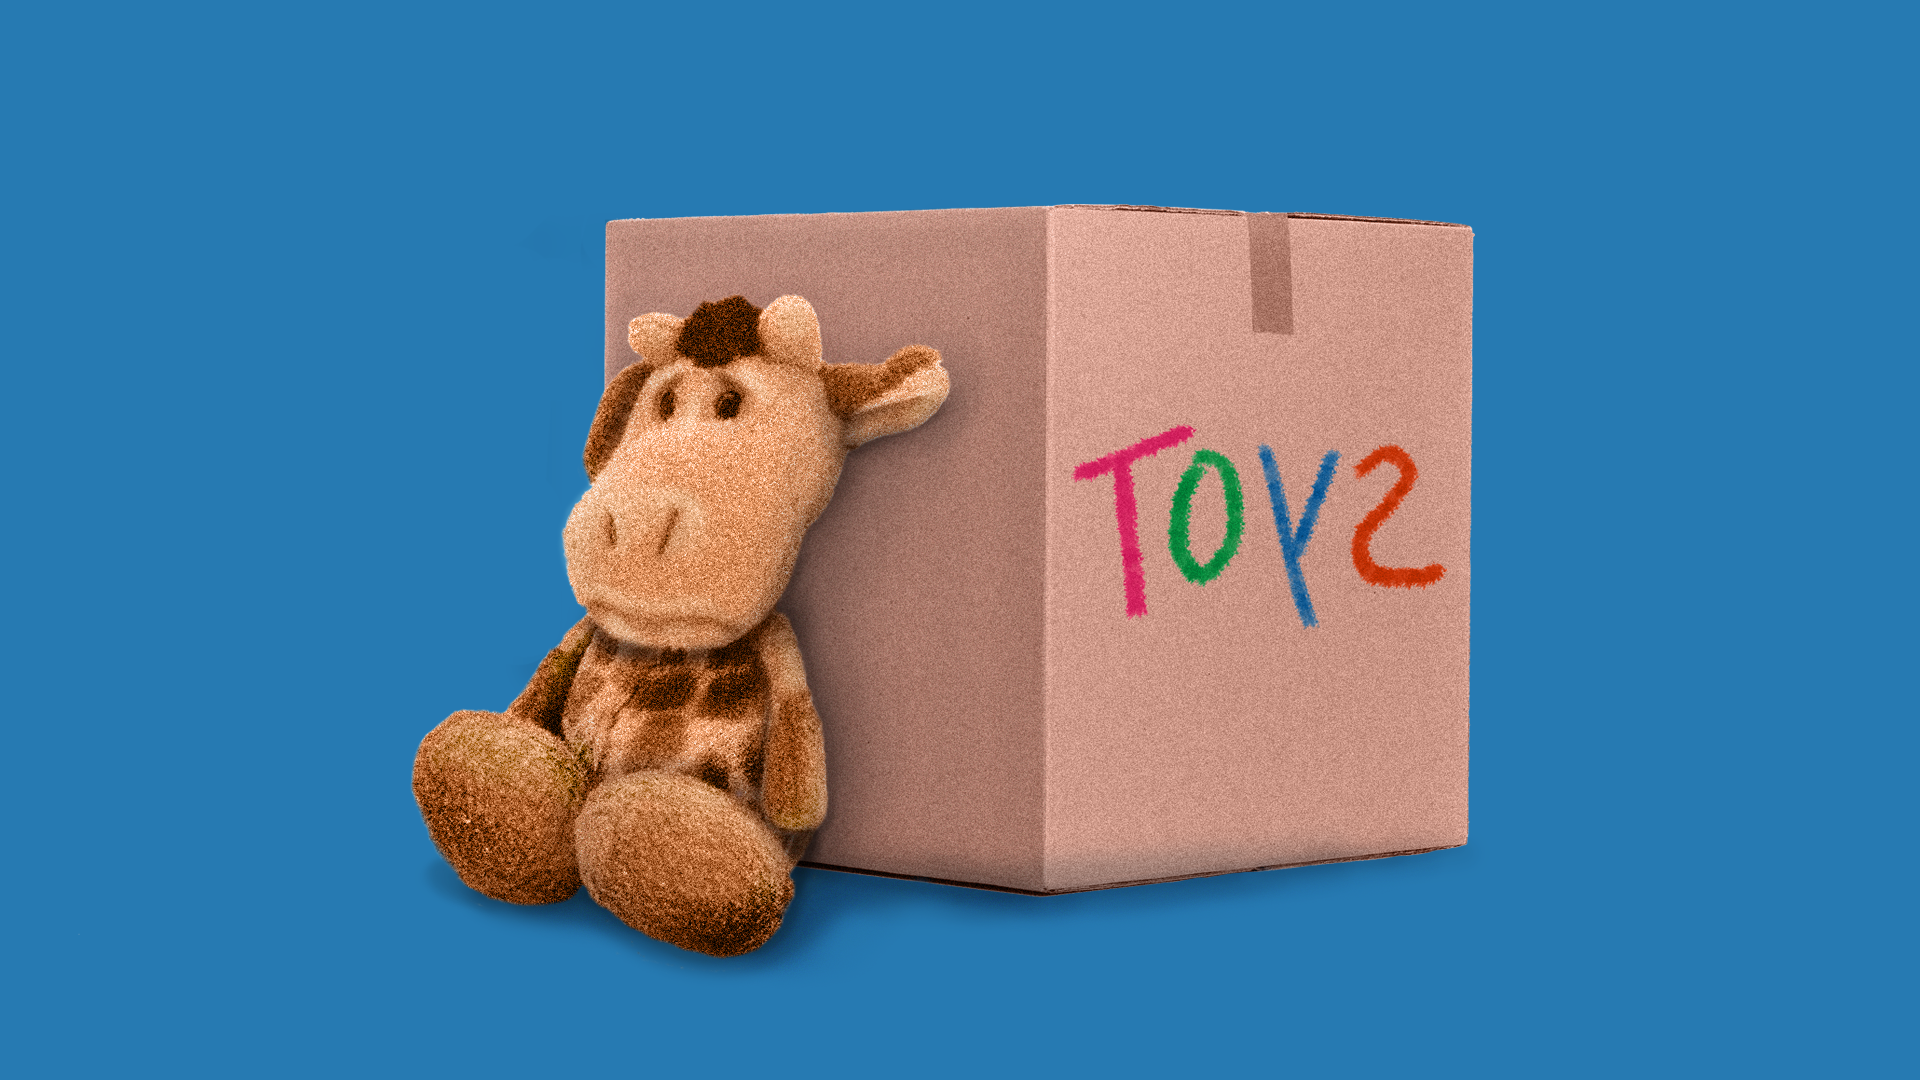 axios.com - Private equity firms create $20 million fund for Toys 'R' Us workers